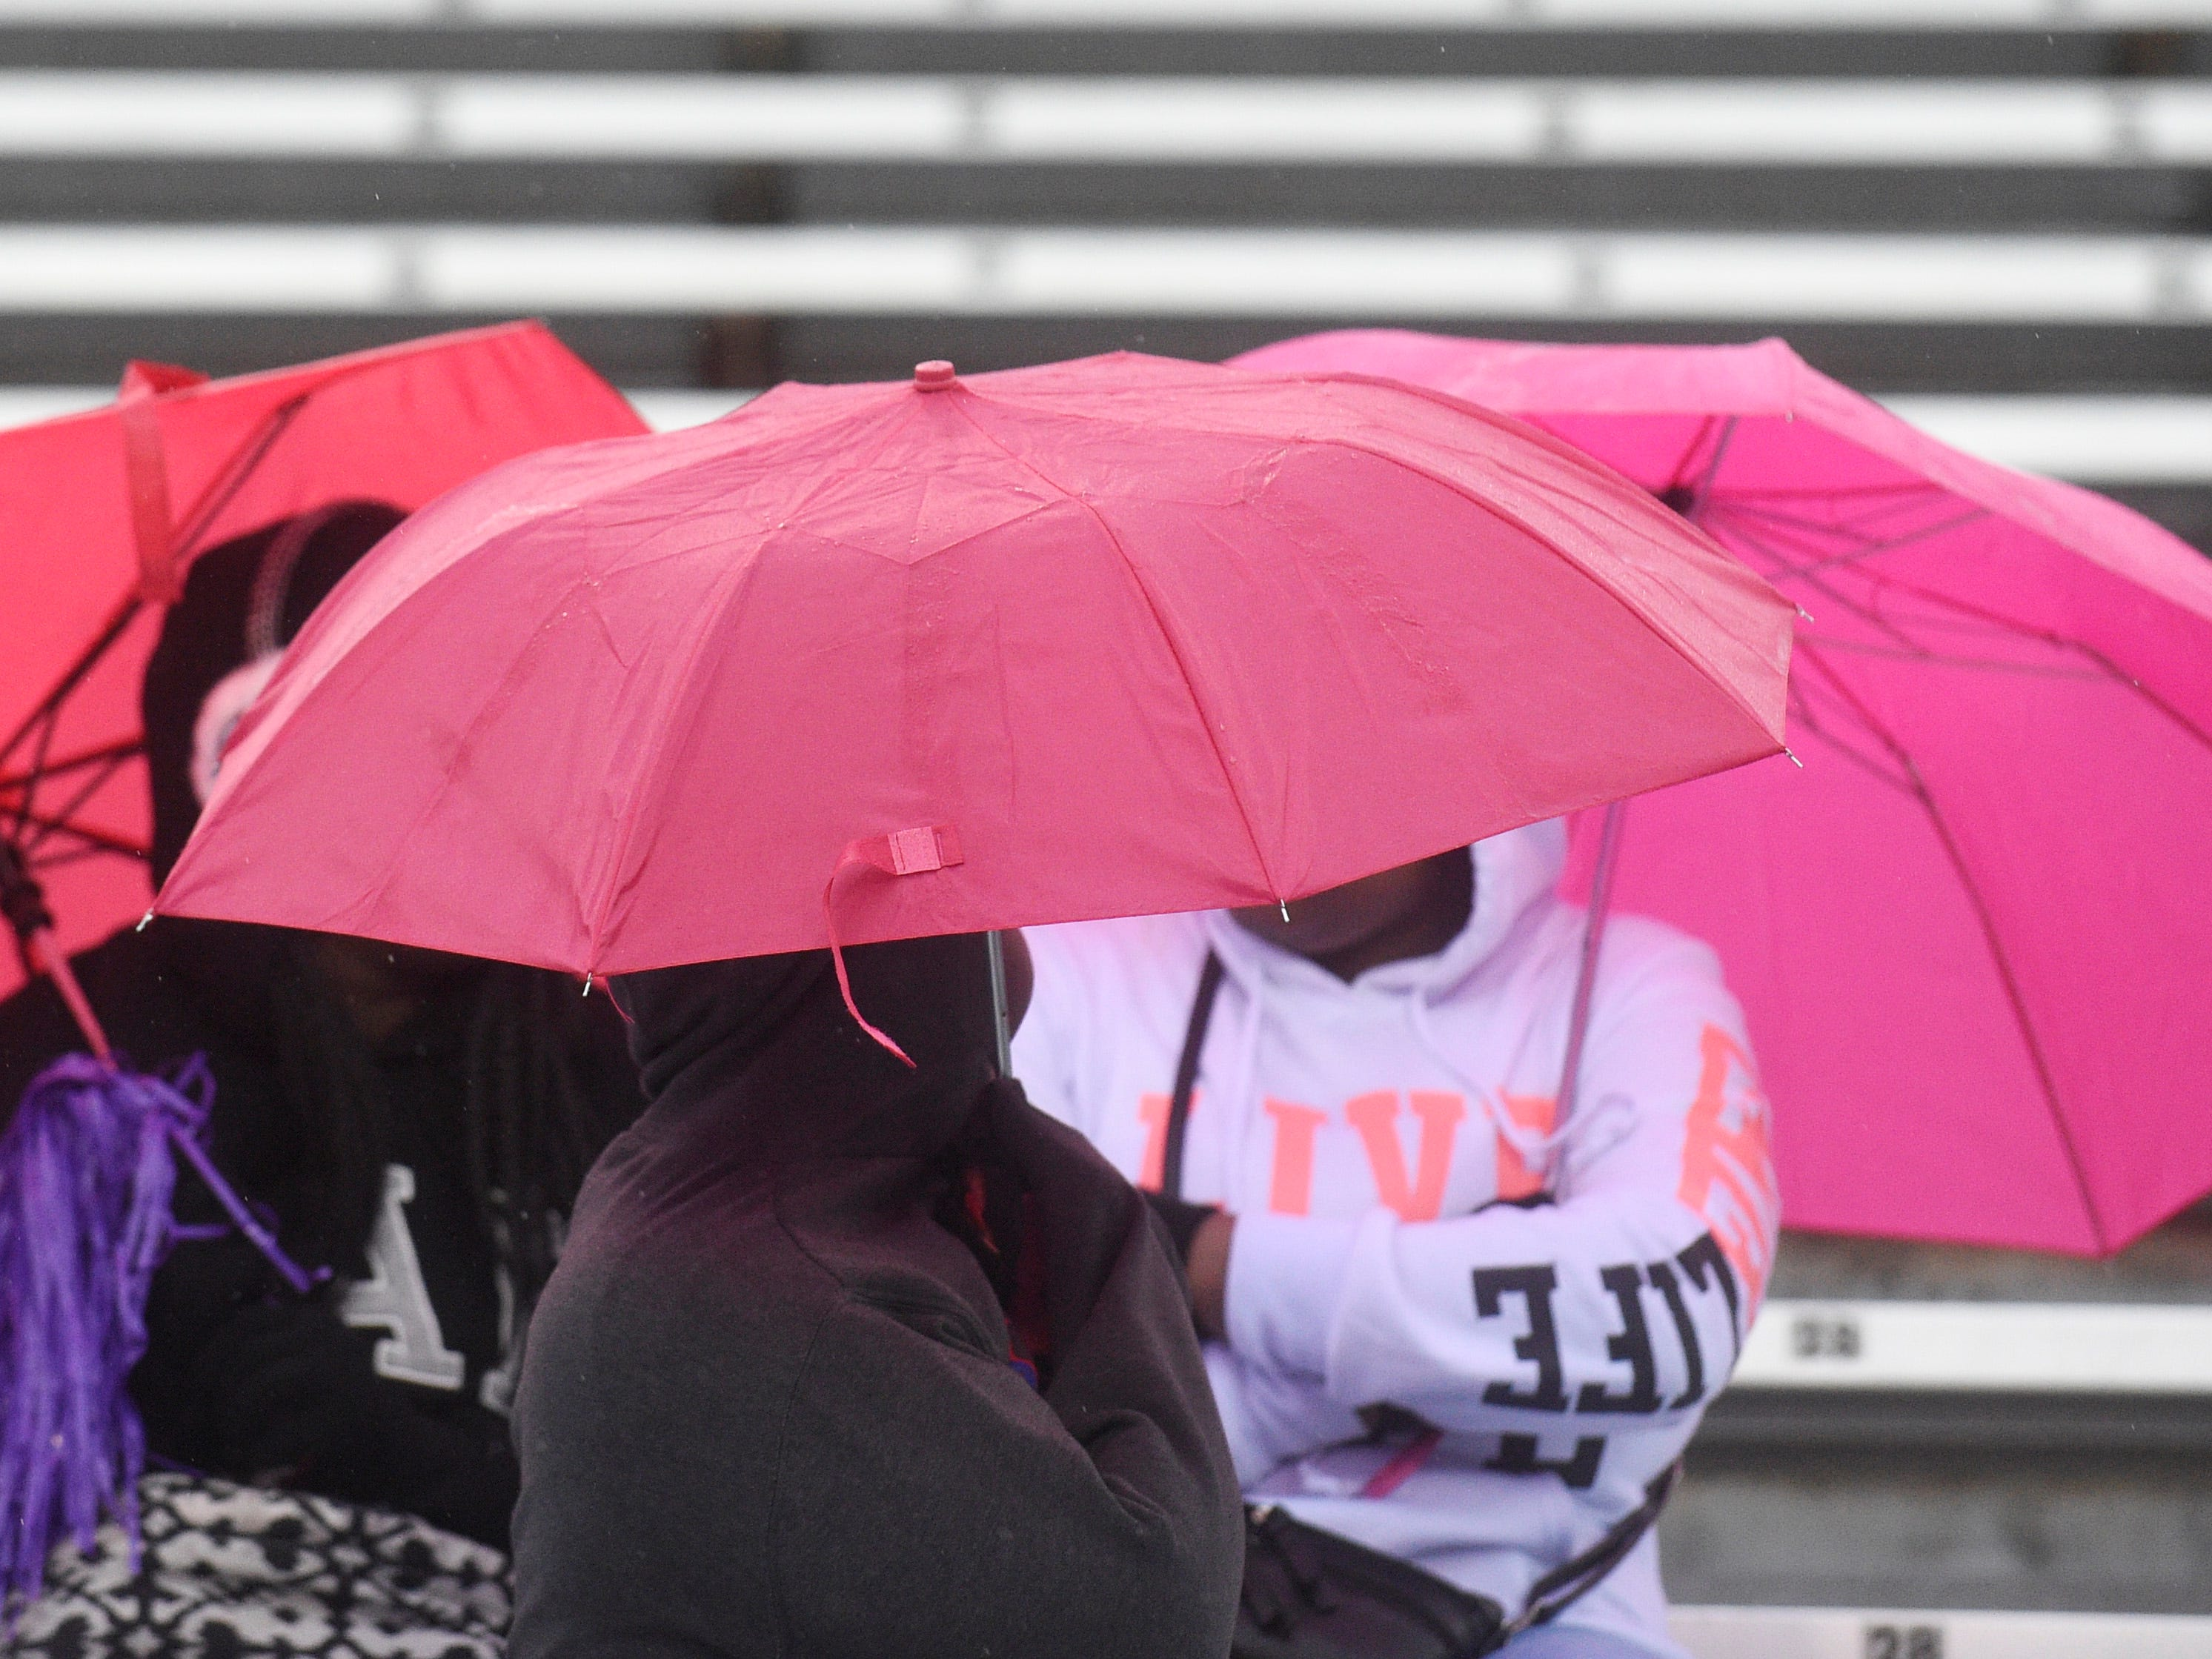 Fans huddle under umbrellas before the Class 4A BlueCross Bowl state championship at Tennessee Tech's Tucker Stadium in Cookeville, Tenn., on Thursday, Nov. 29, 2018.